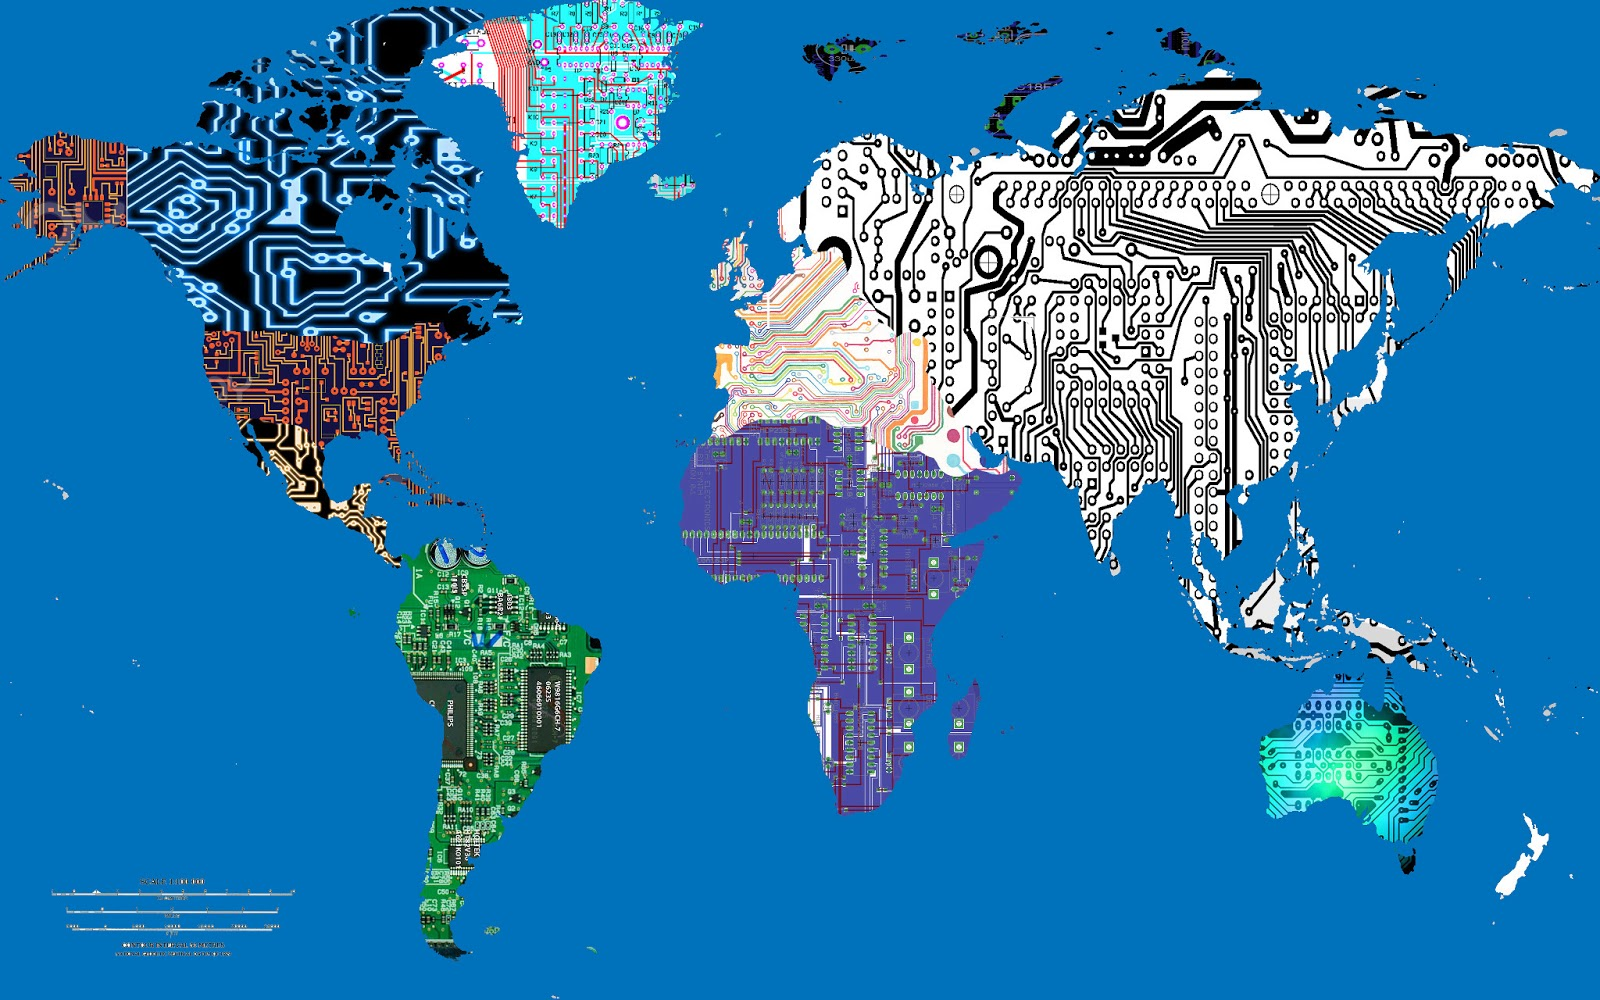 i chose to turn world map into a collage of circuitry and technological patterns